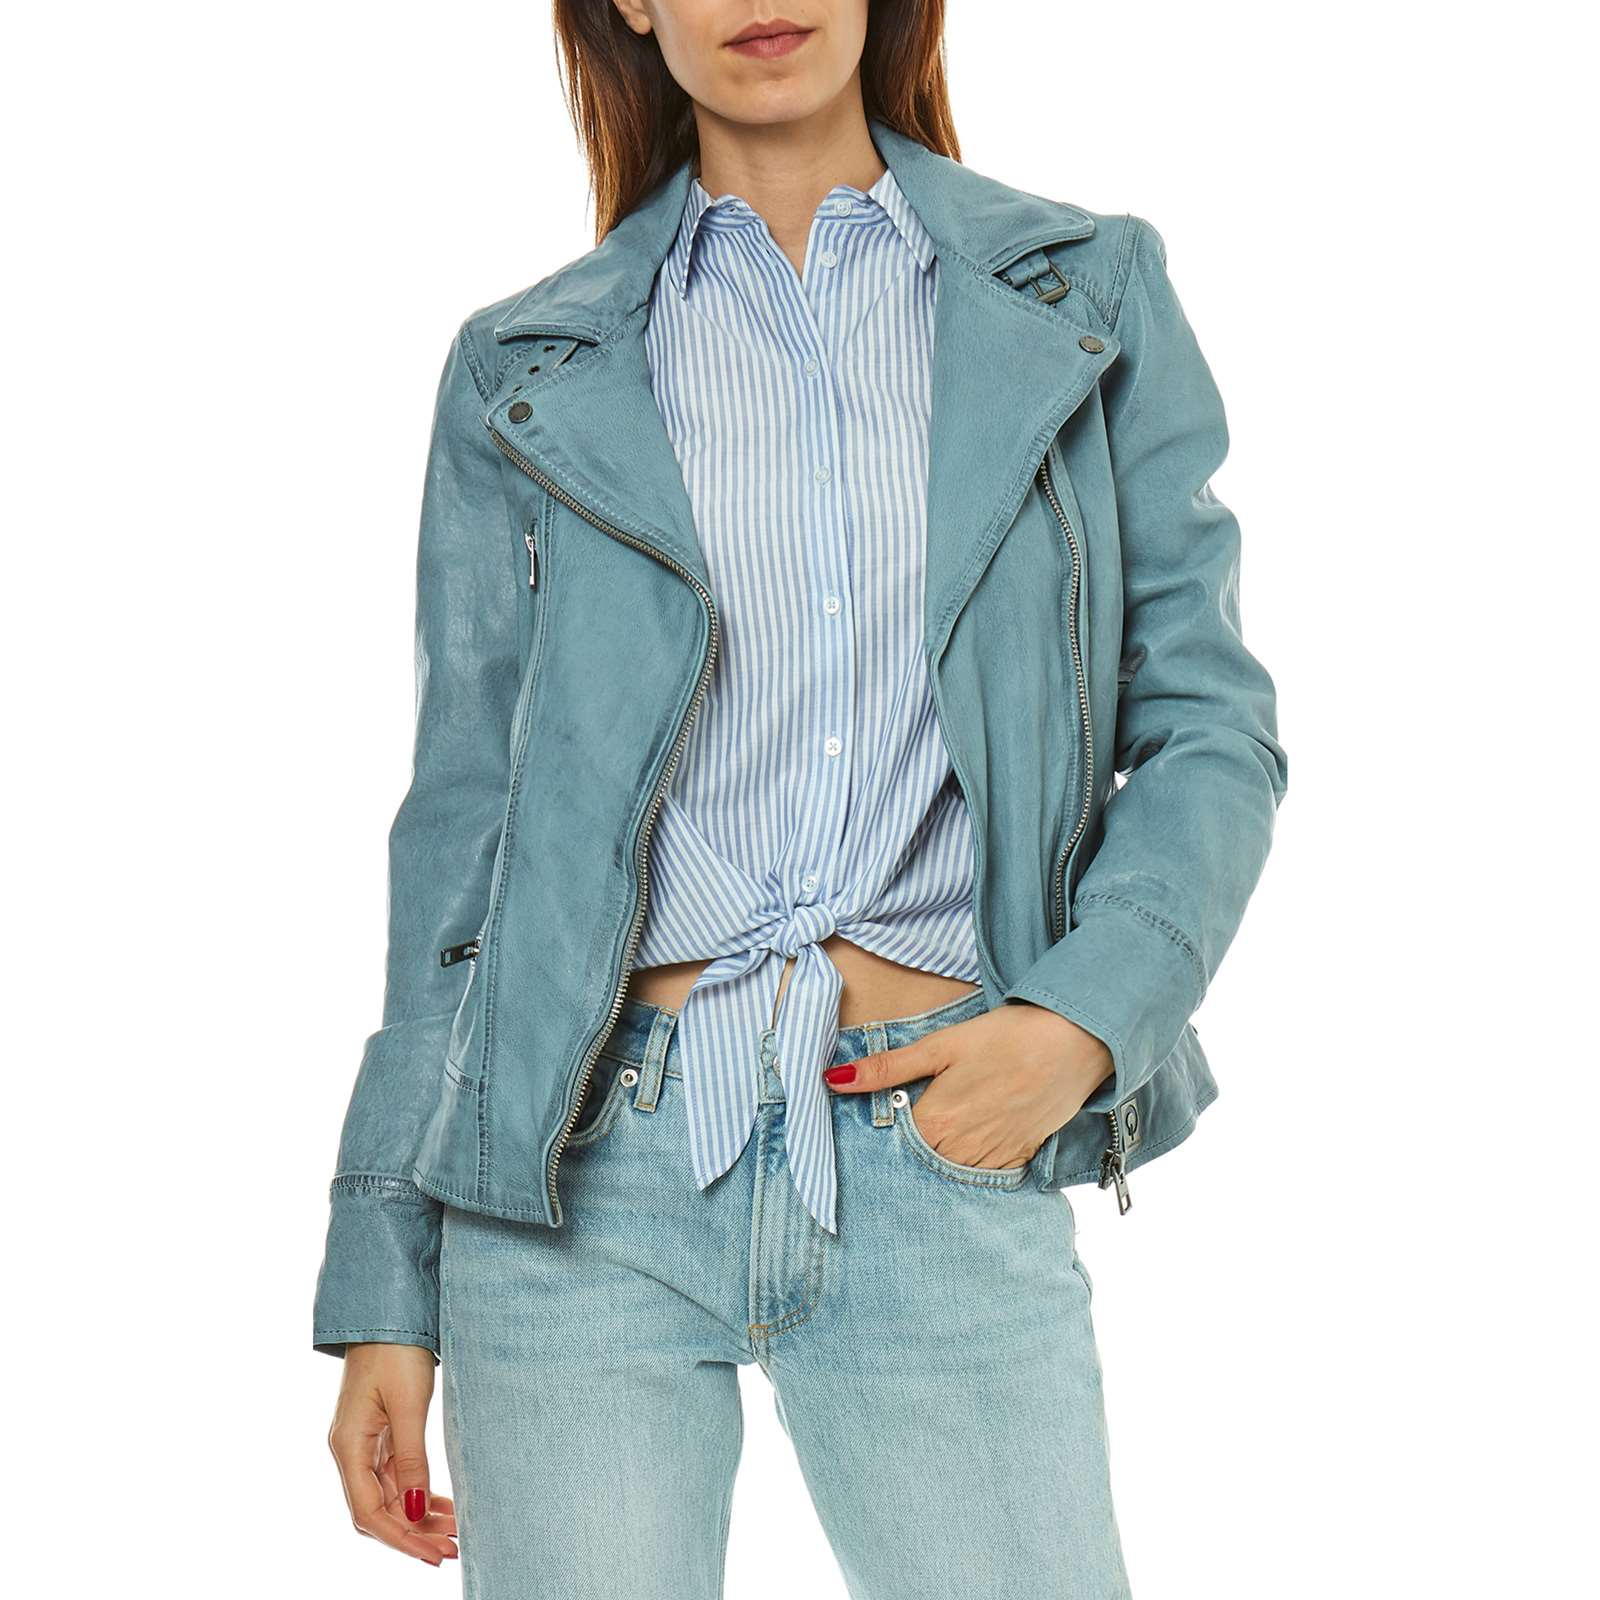 Oakwood Each - Veste en cuir - bleu clair   BrandAlley 8de371a09a1f